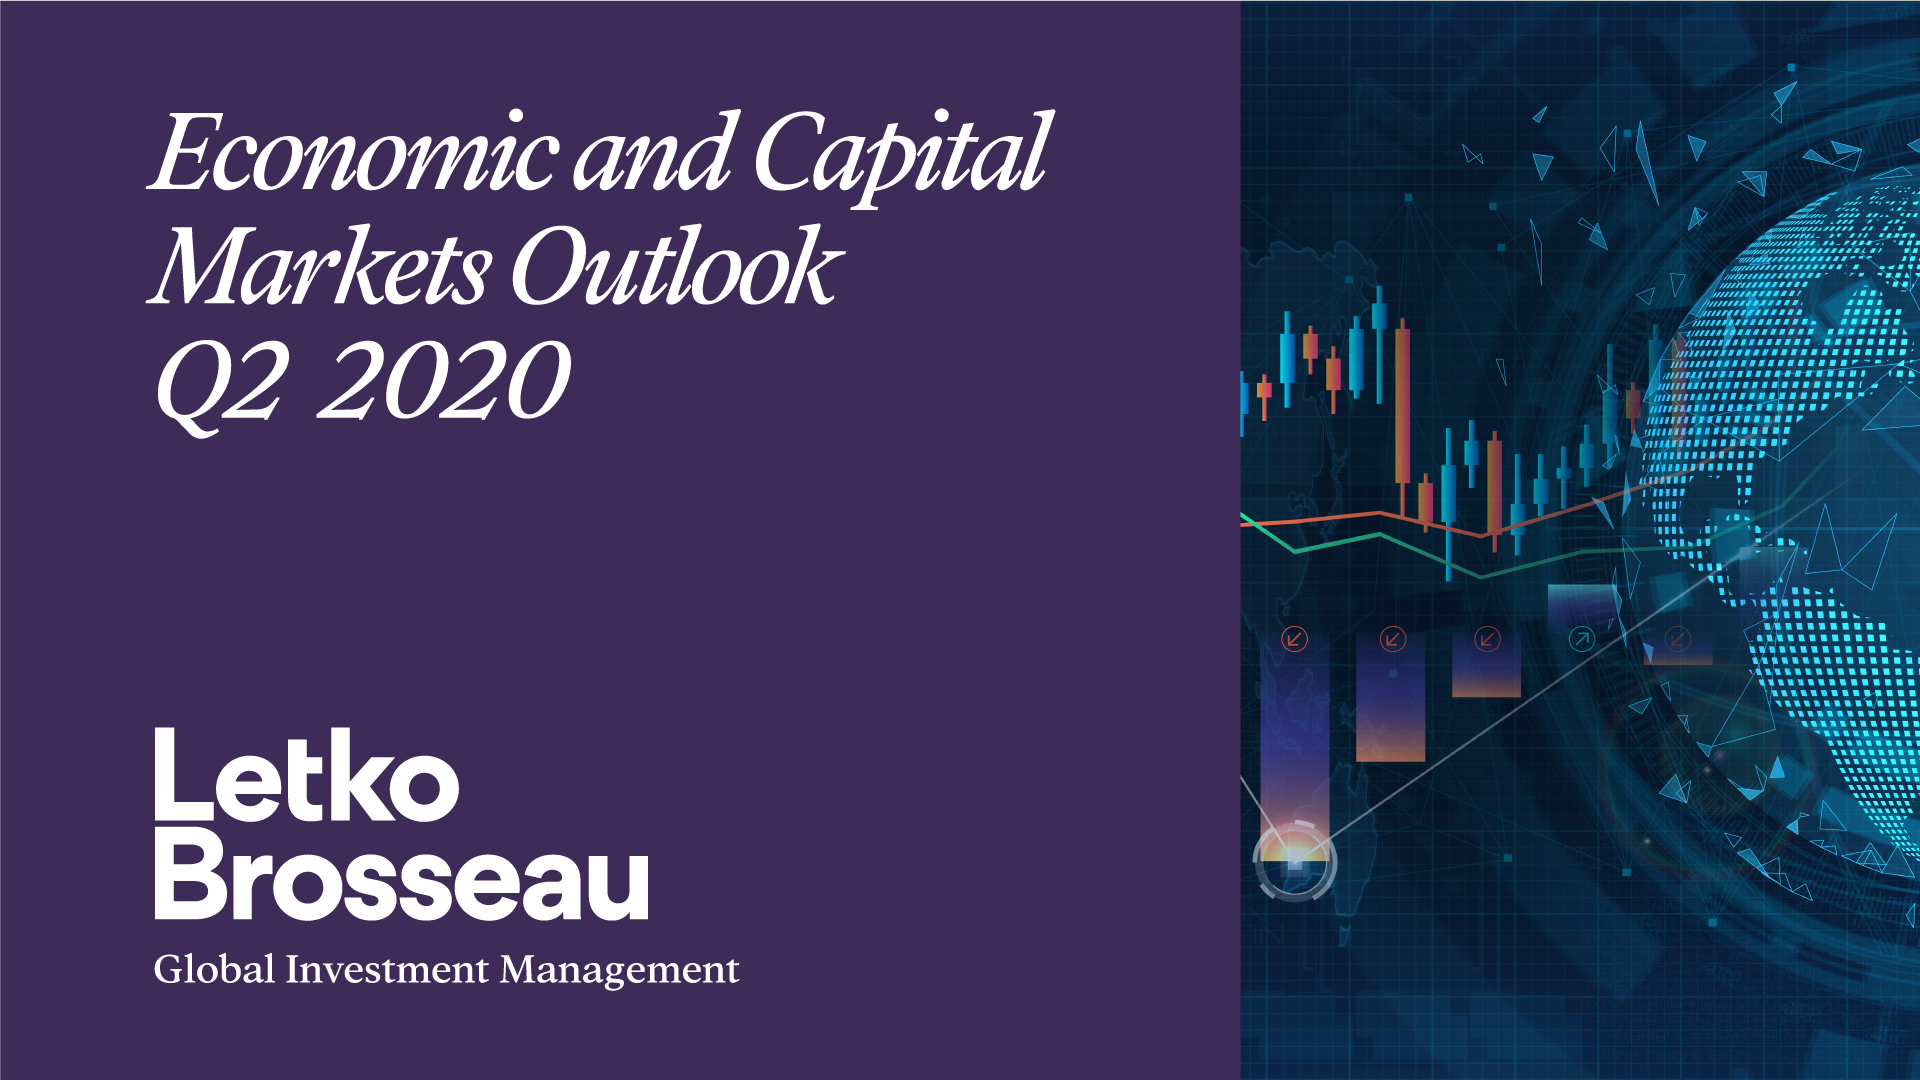 Economic and Capital Markets Outlook – Q2 2020